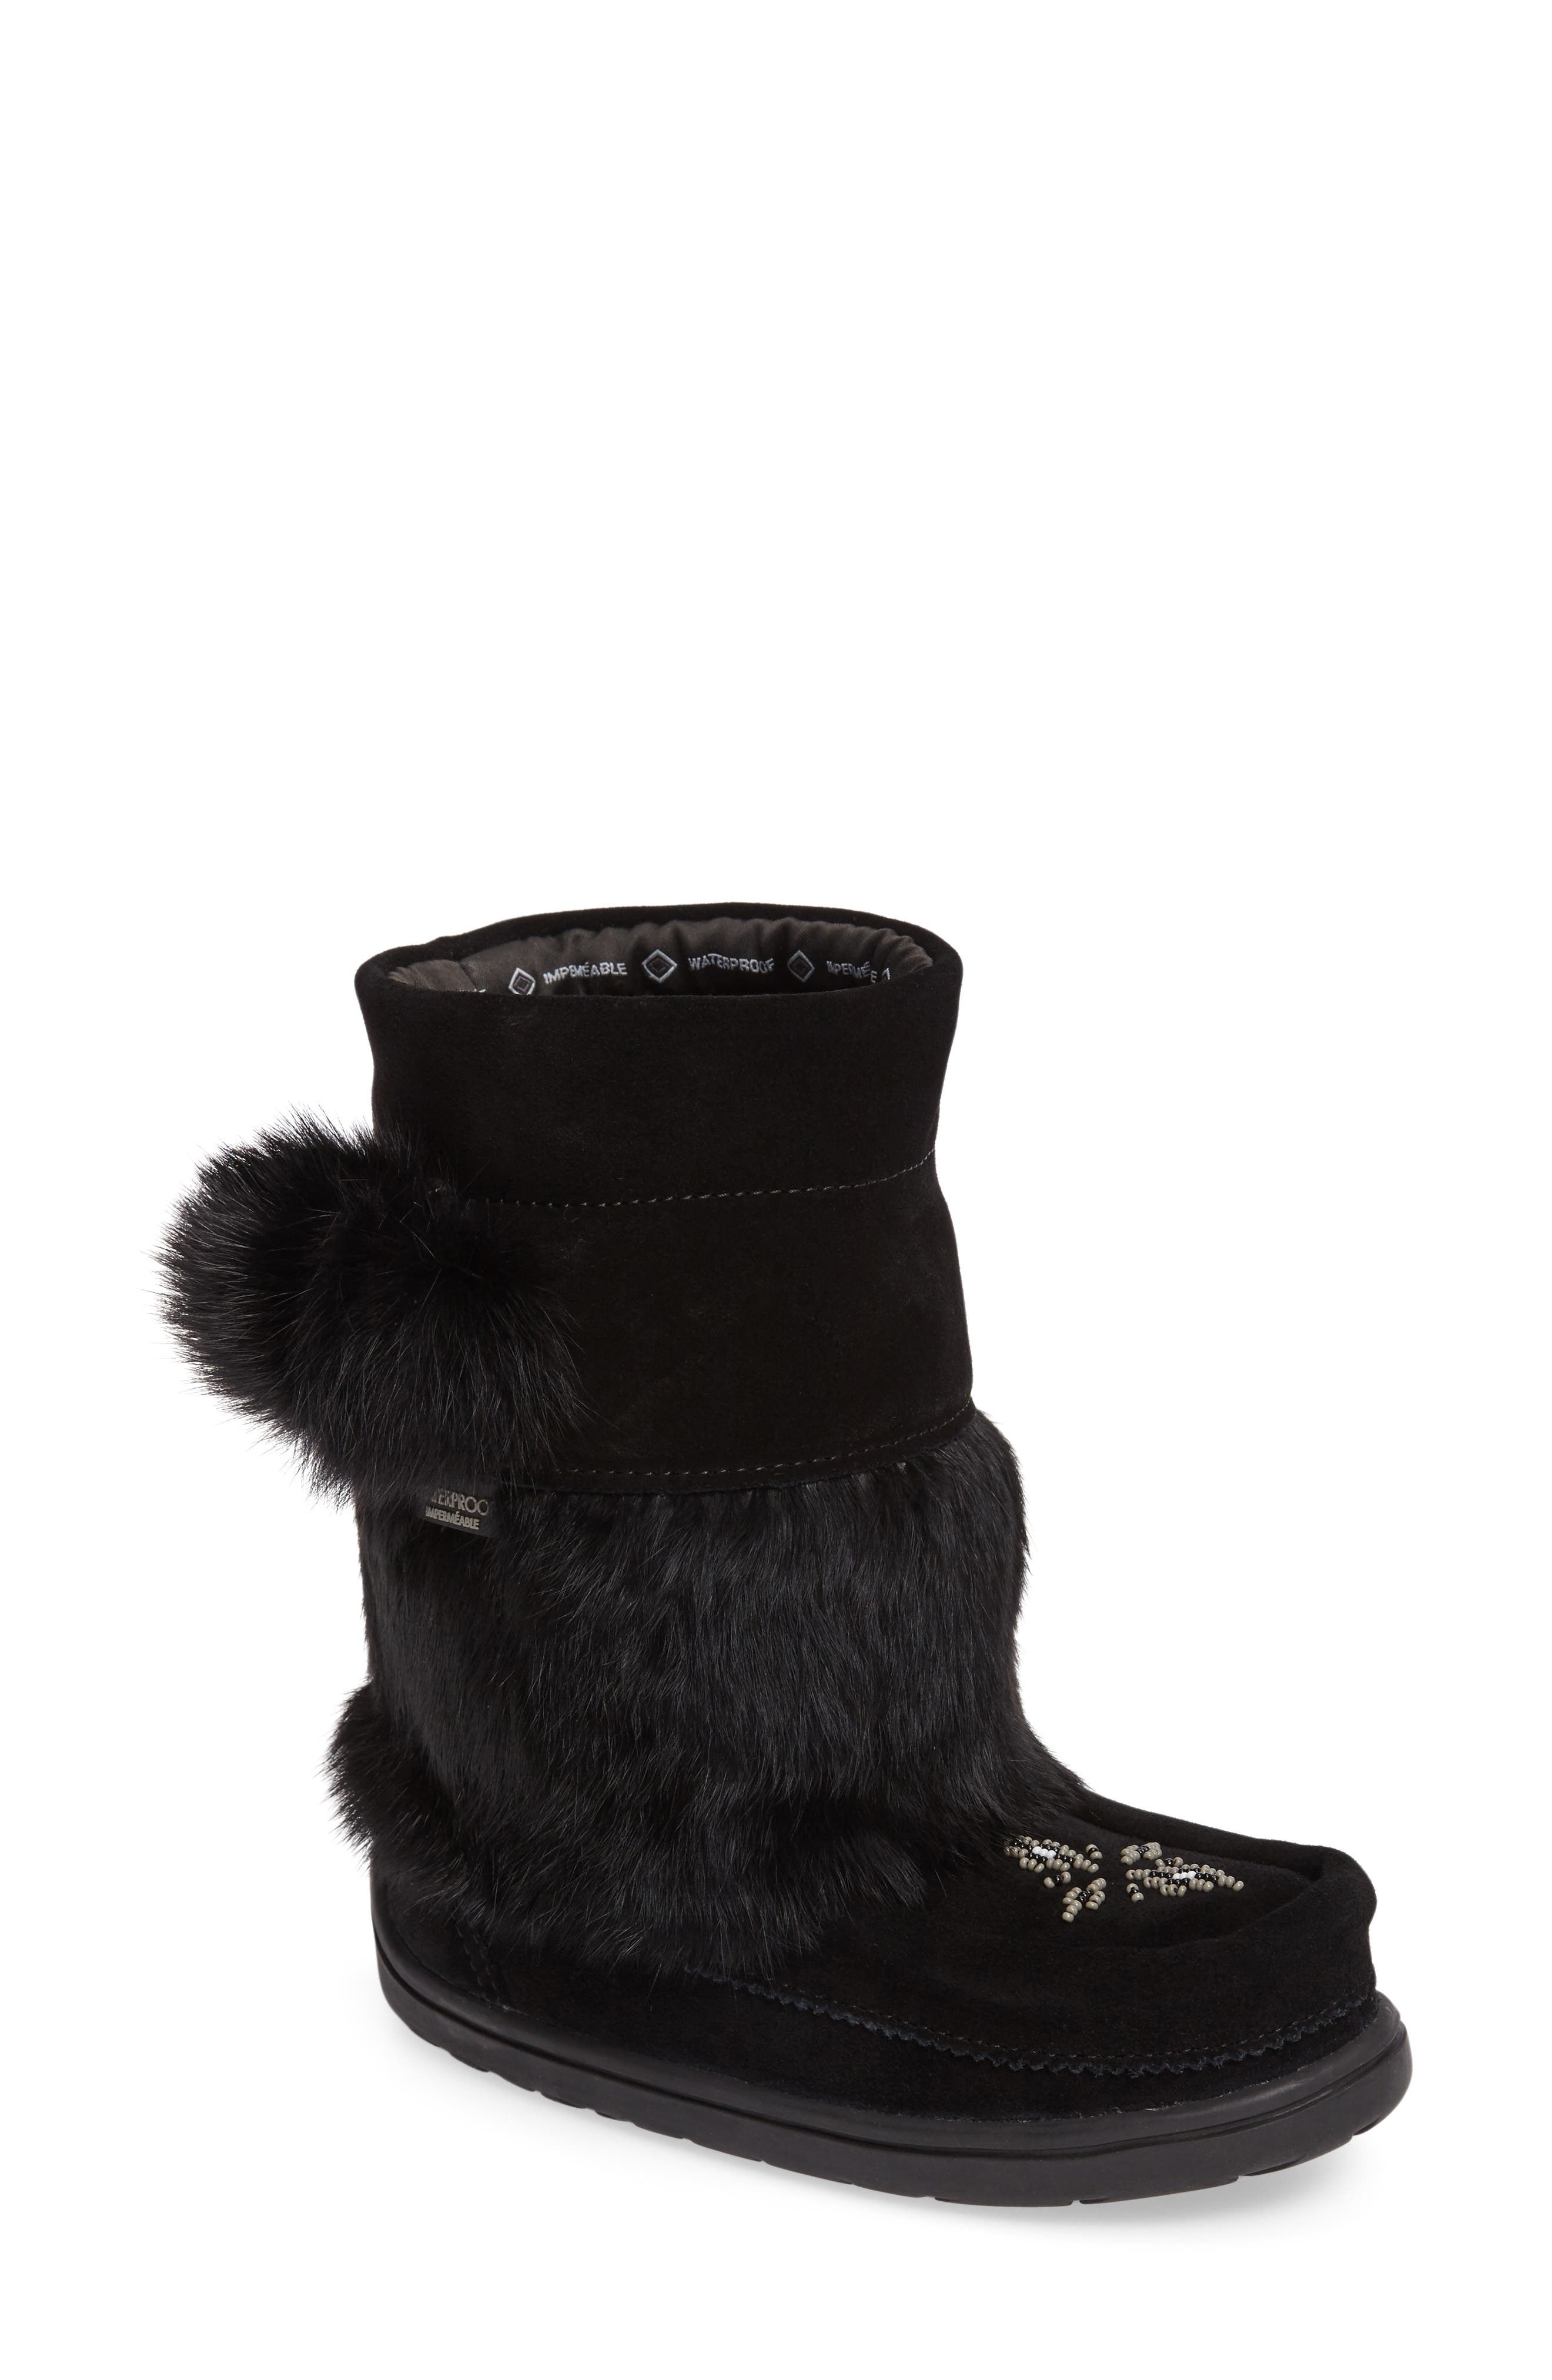 Alternate Image 1 Selected - Manitobah Mukluks Snowy Owlet Genuine Fur Waterproof Boot (Walker, Toddler & Little Kid)